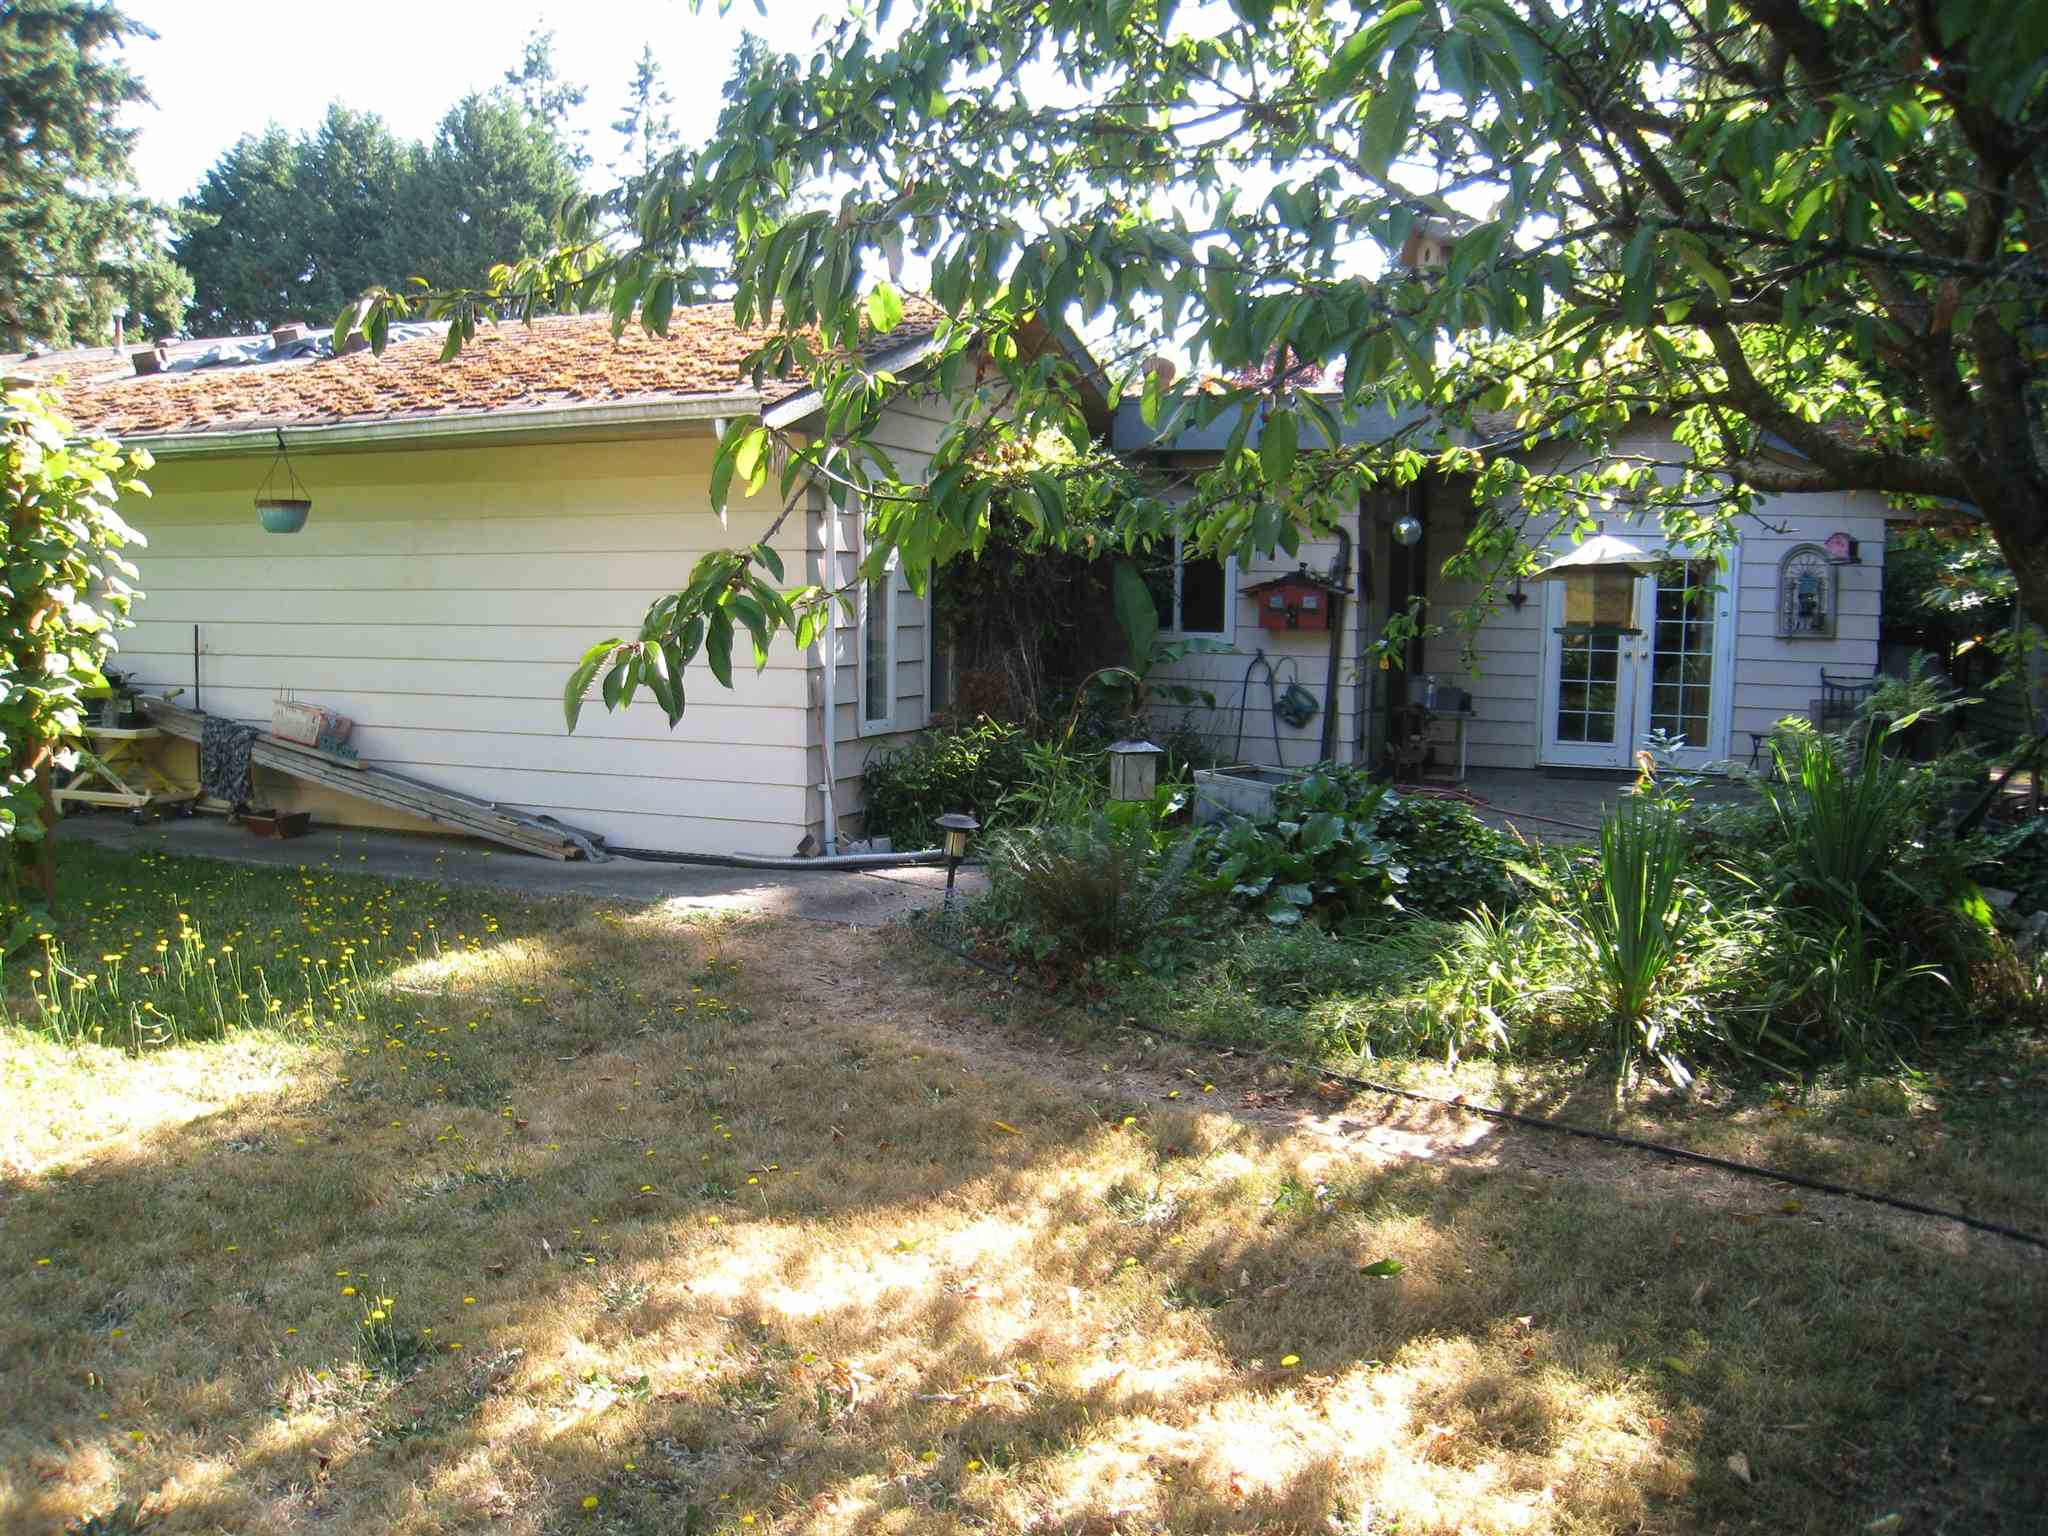 4107 204B STREET - Brookswood Langley House/Single Family for sale, 4 Bedrooms (R2604987) - #1